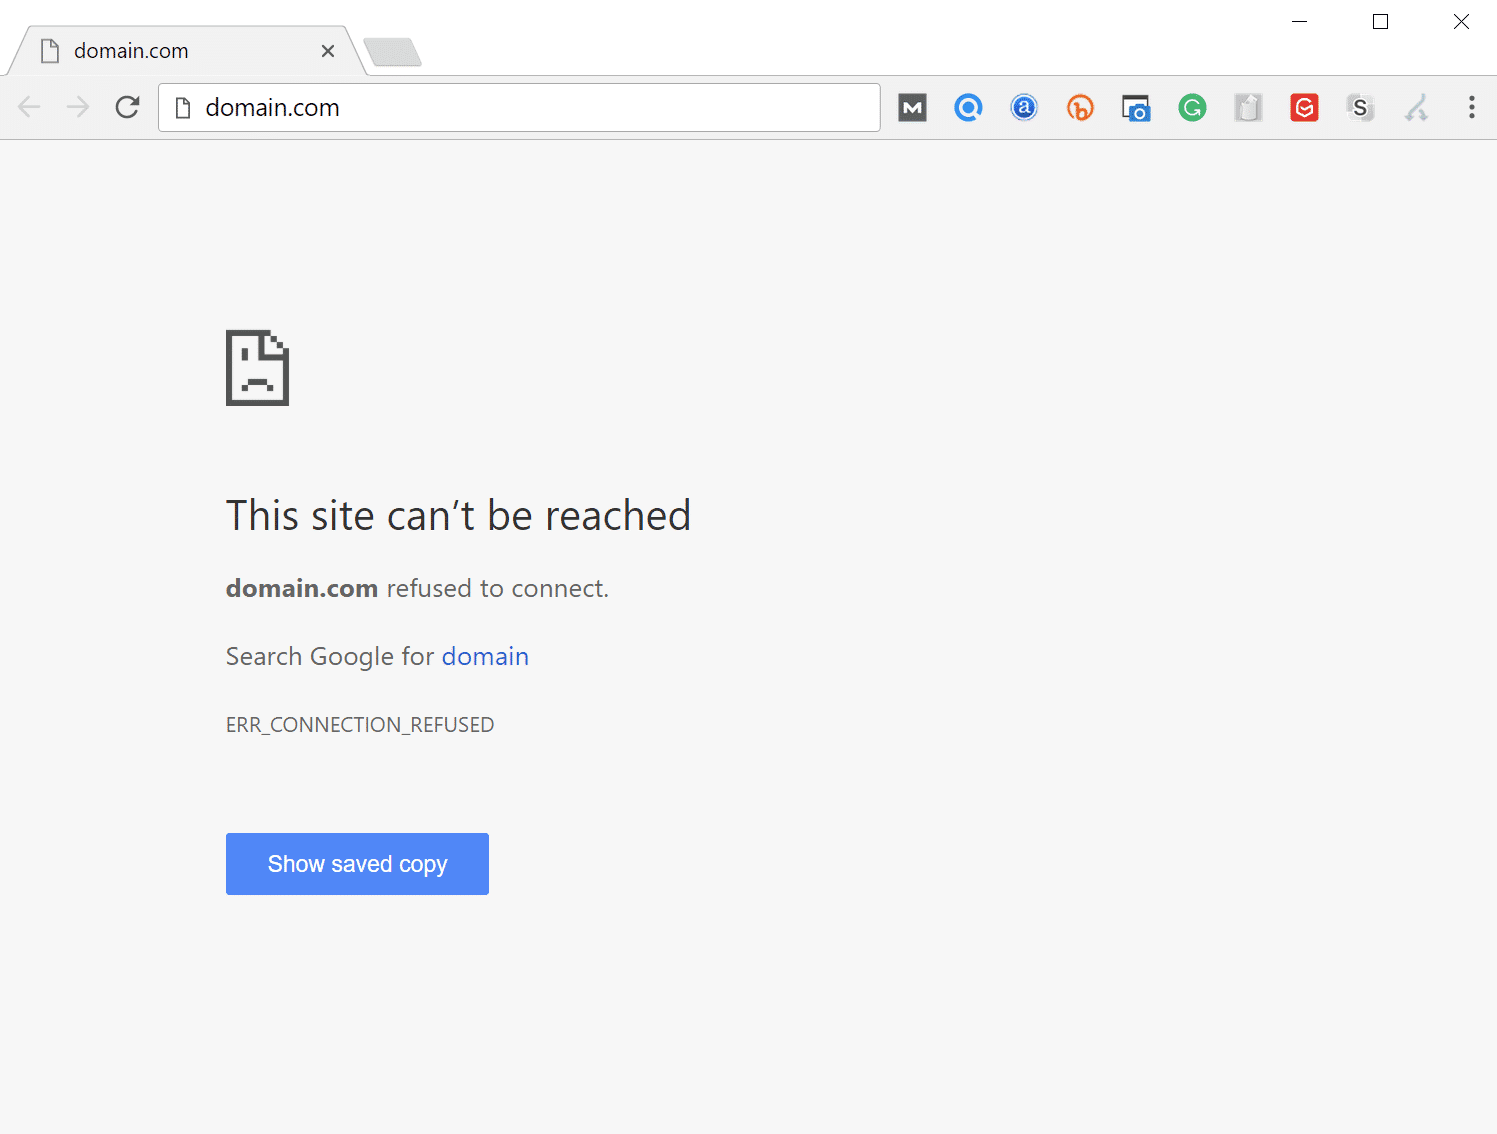 L'ERRORE ERR_CONNECTION_REFUSED in Google Chrome